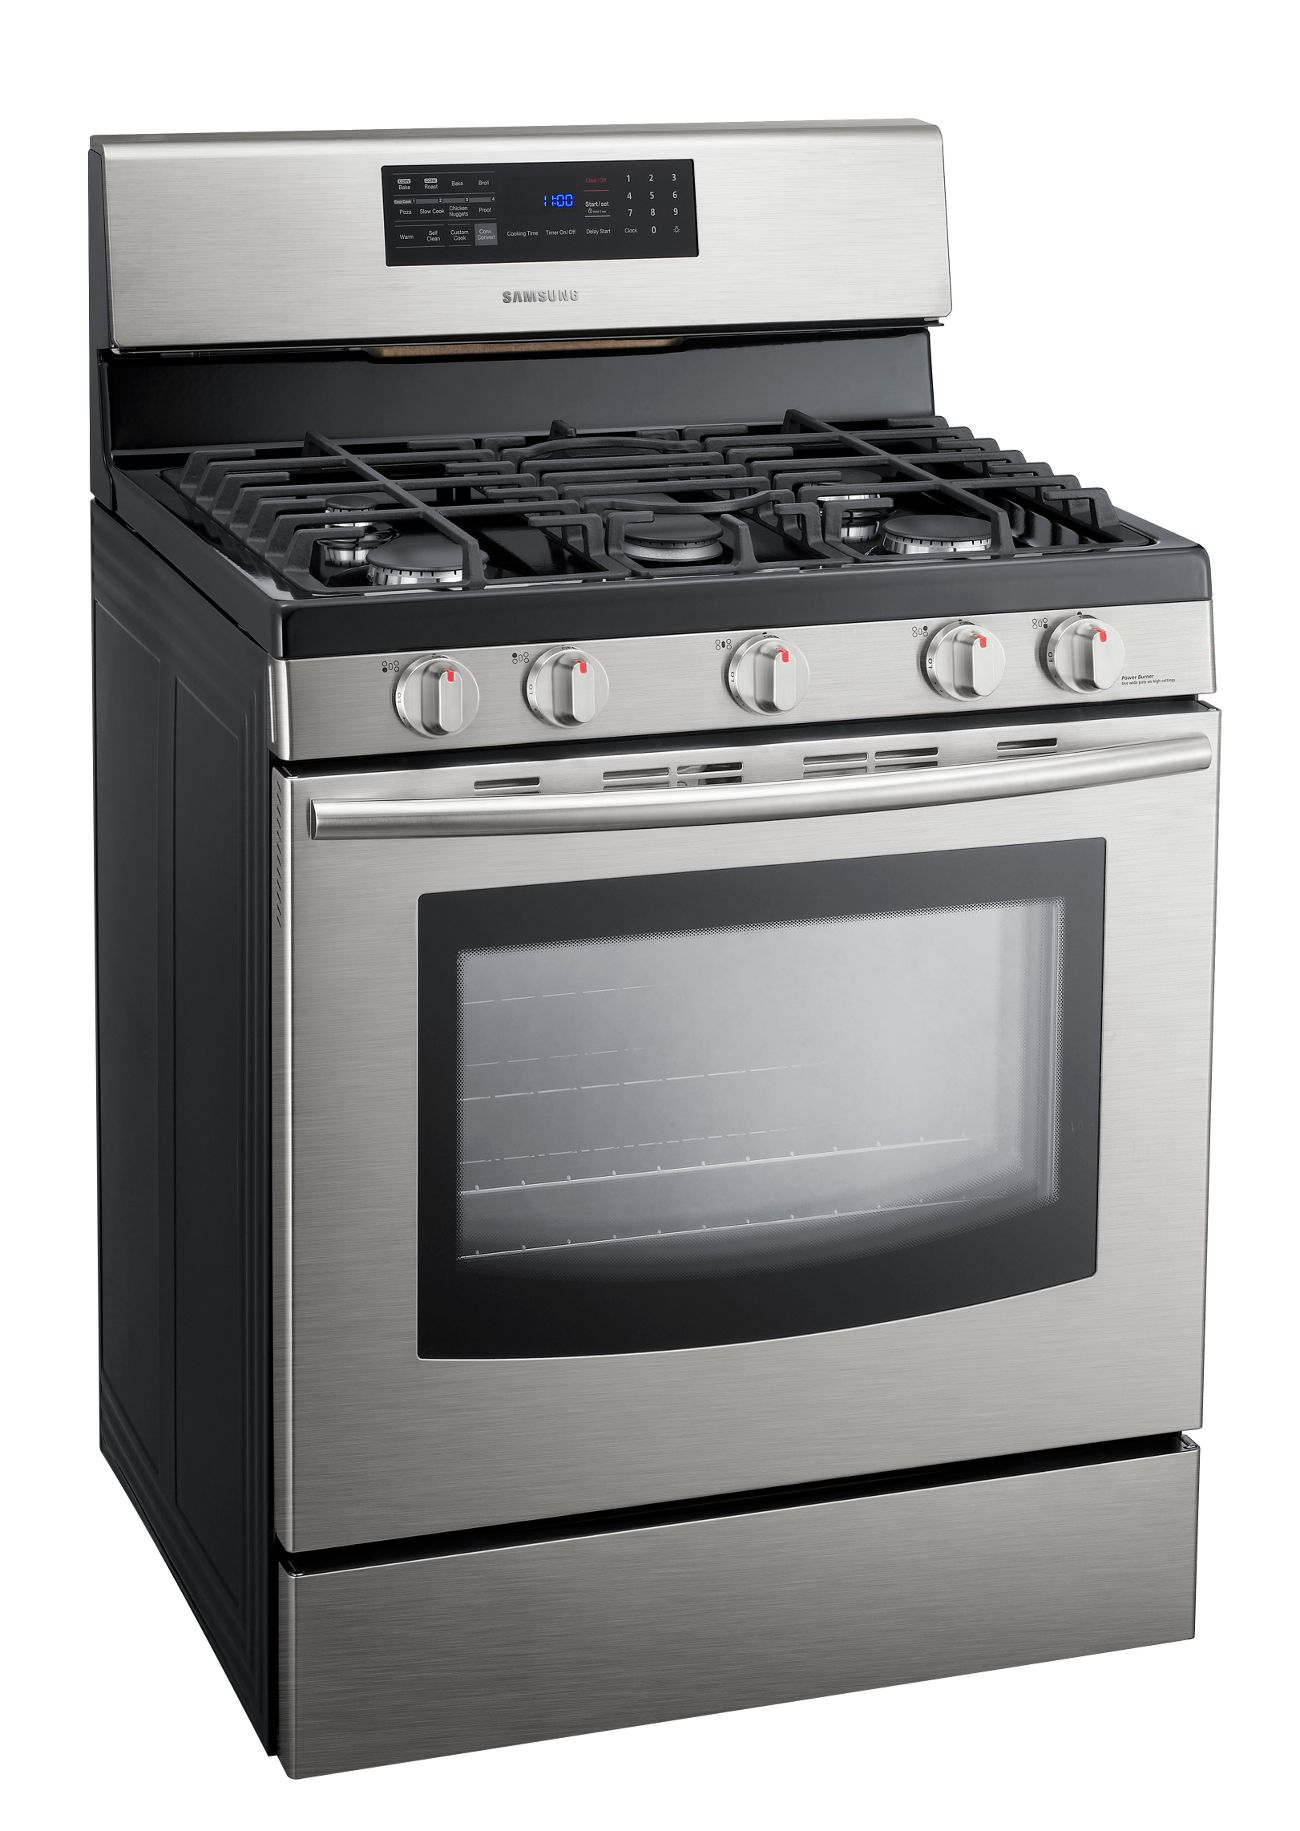 Samsung 5.8 cu. ft. Freestanding Gas Range - Stainless Steel